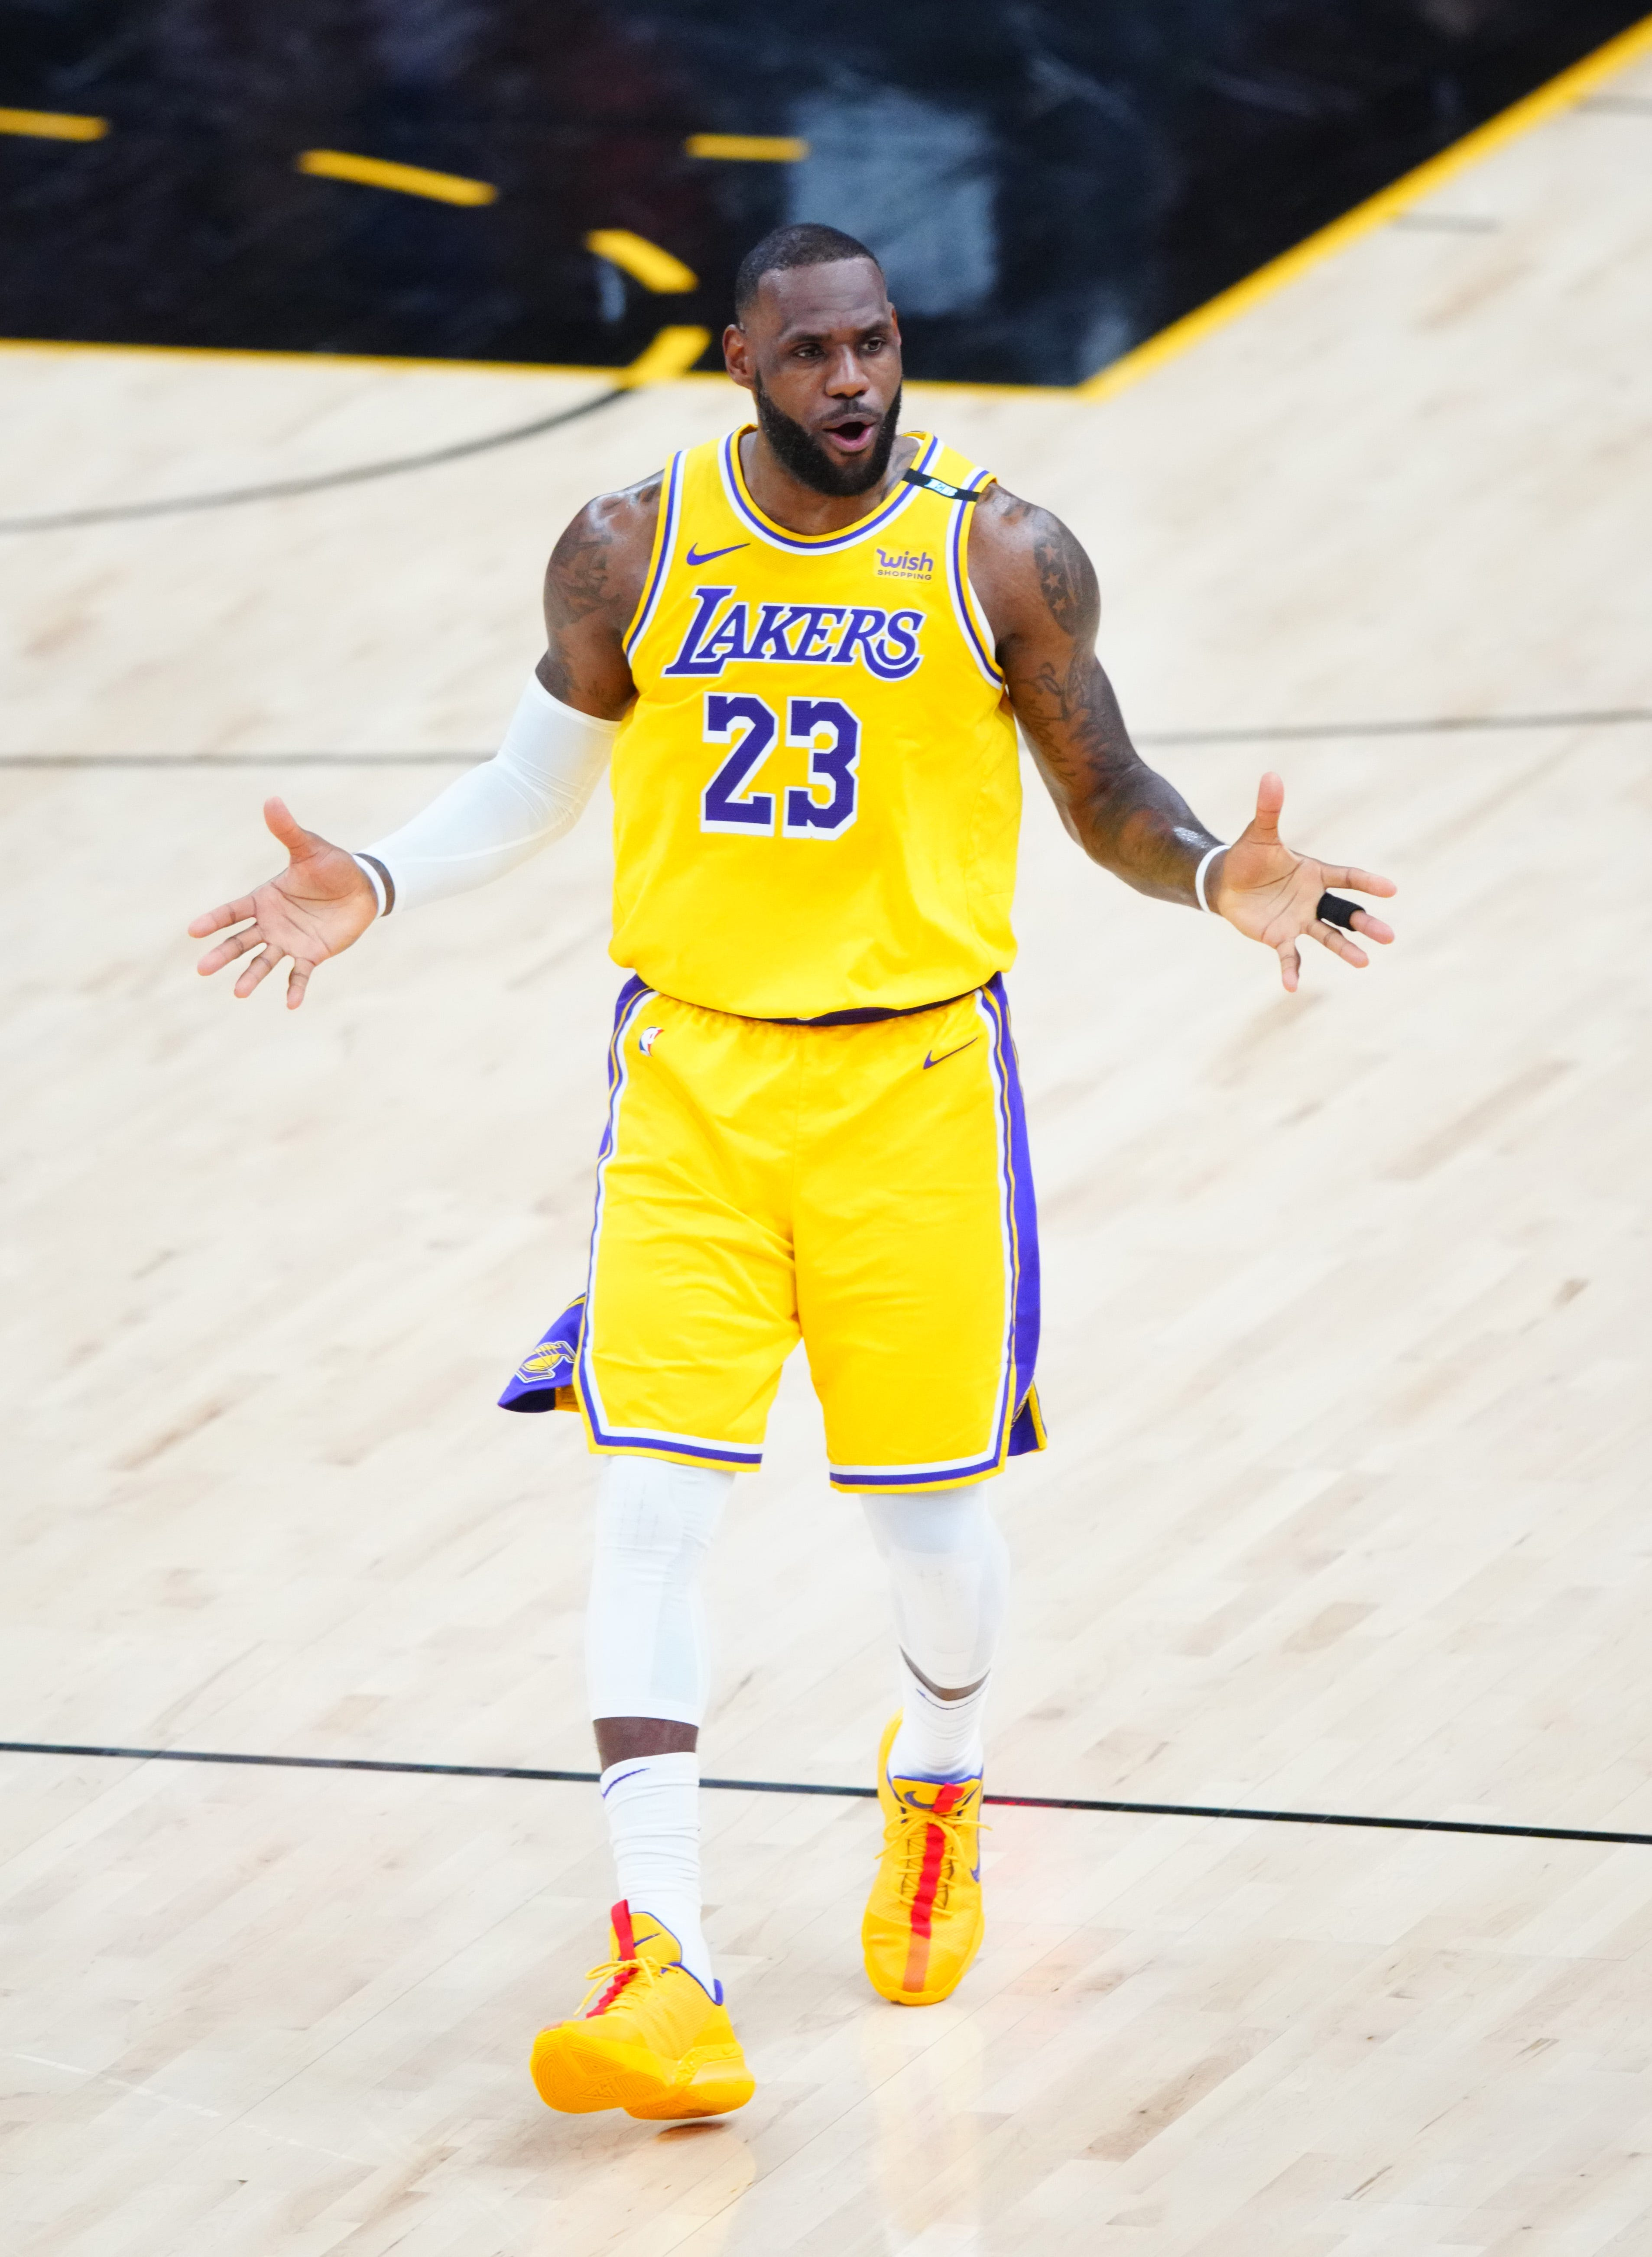 Opinion: LeBron James, supporting cast let down Lakers in Anthony Davis' absence, and now season is on the brink